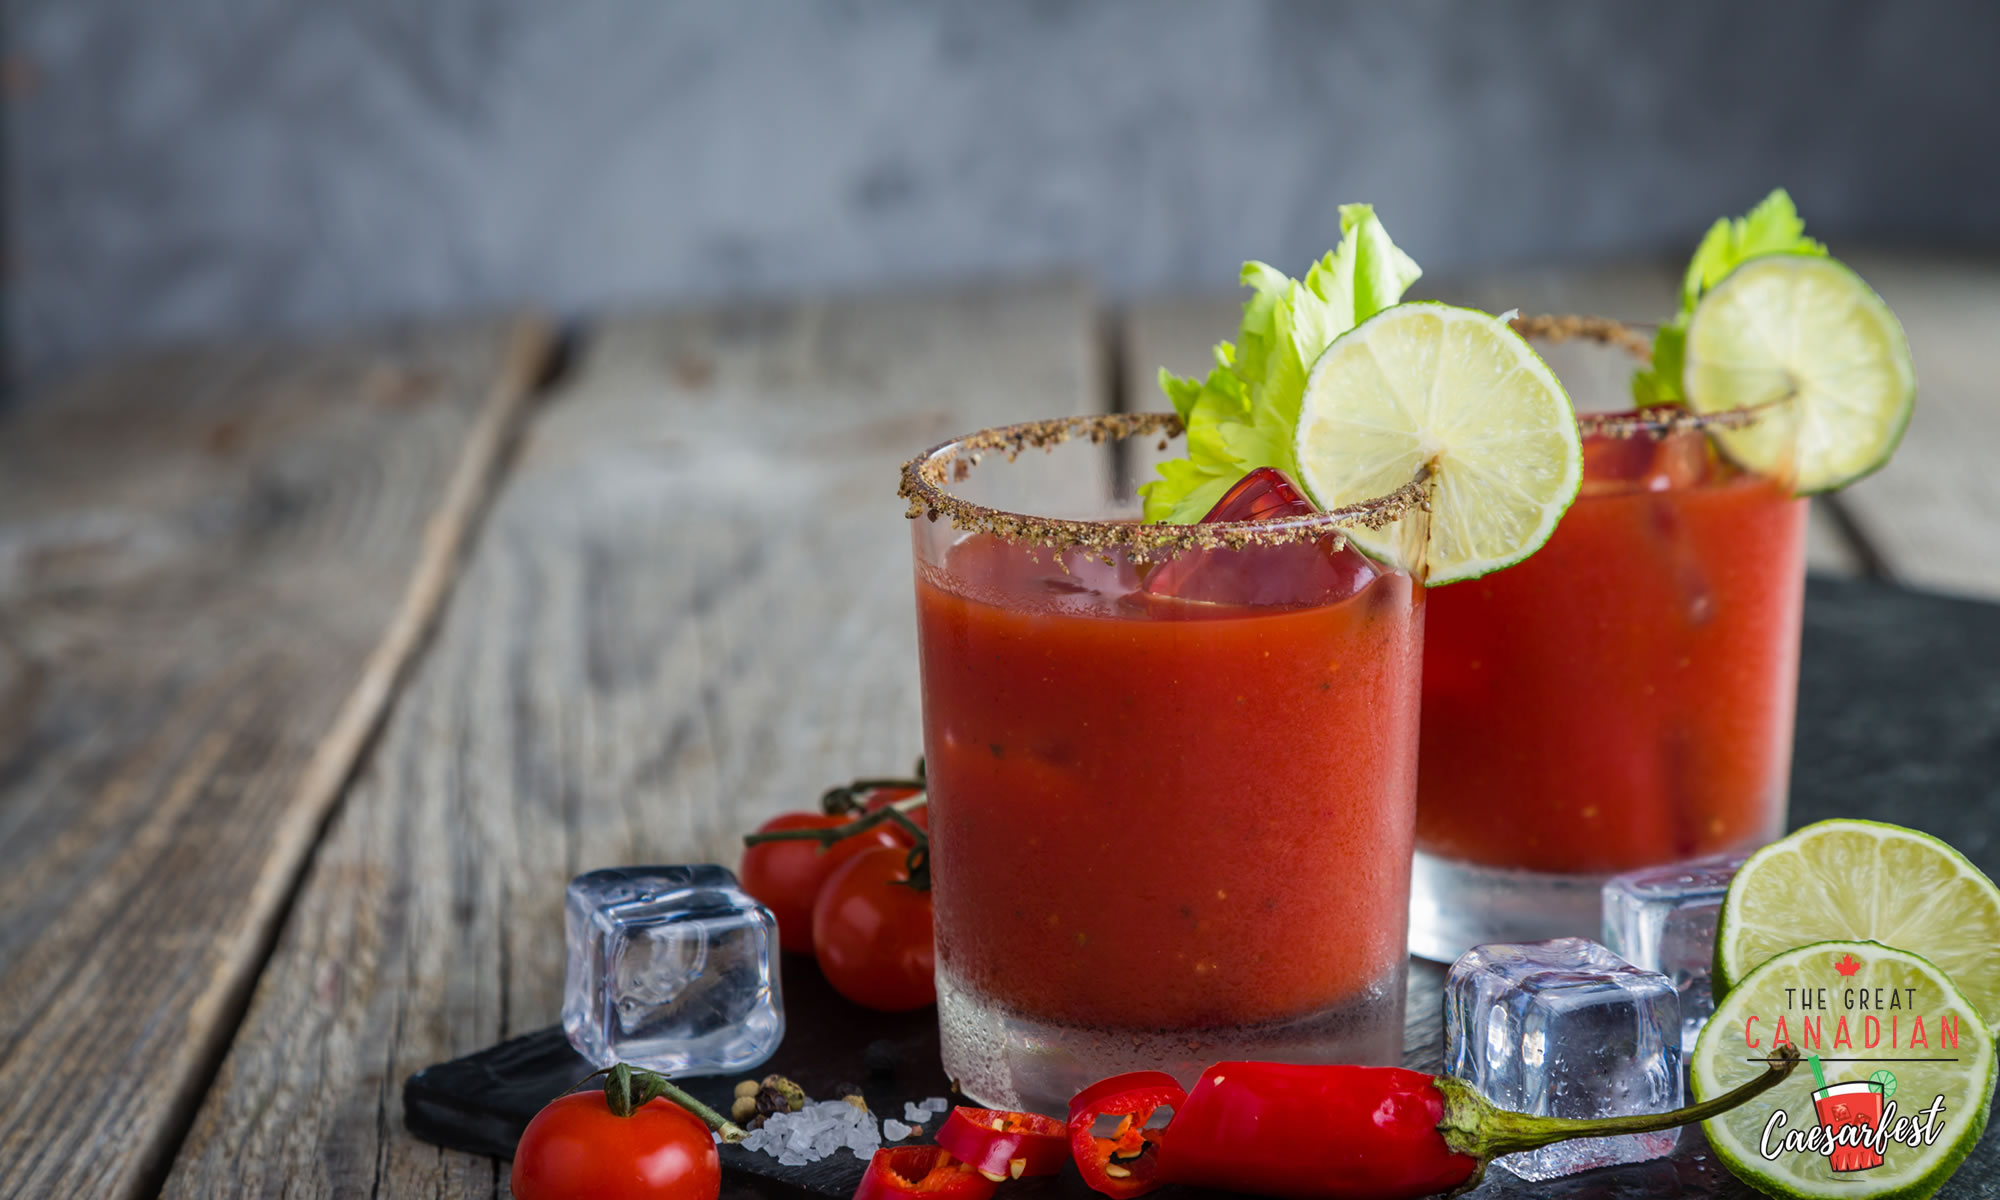 The Great Canadian Caesarfest